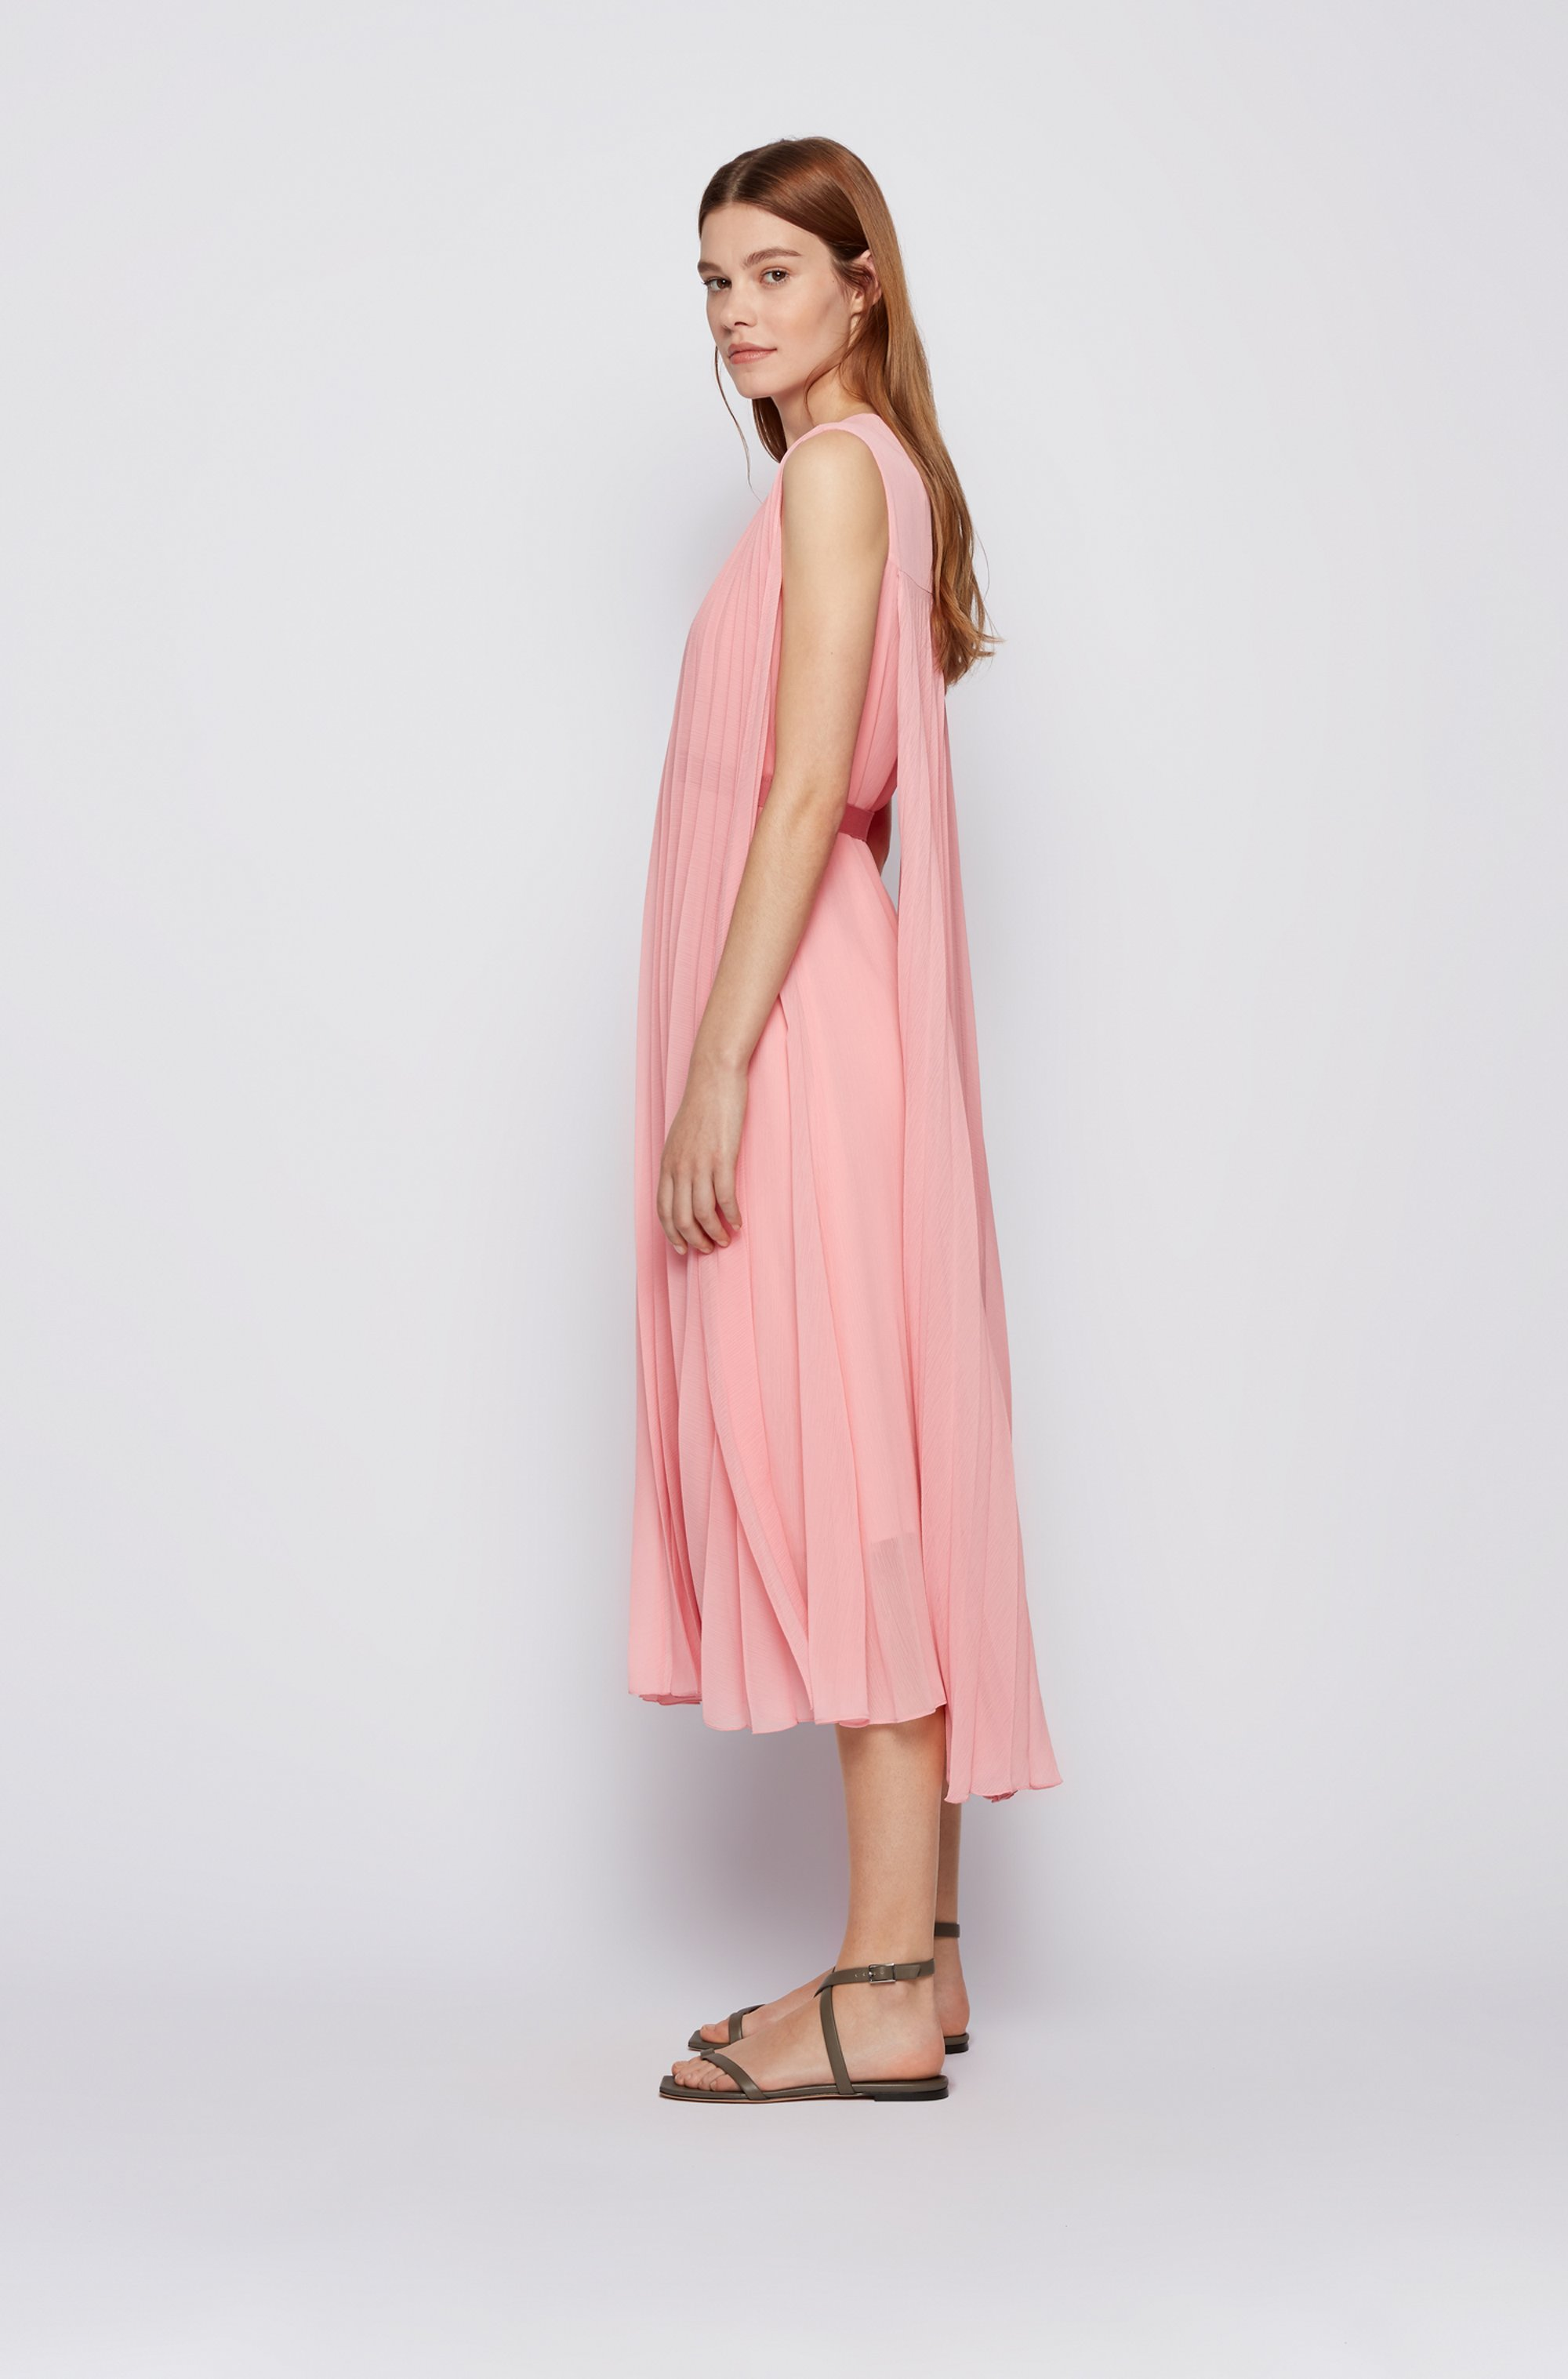 V-neck midi dress in recycled plissé chiffon